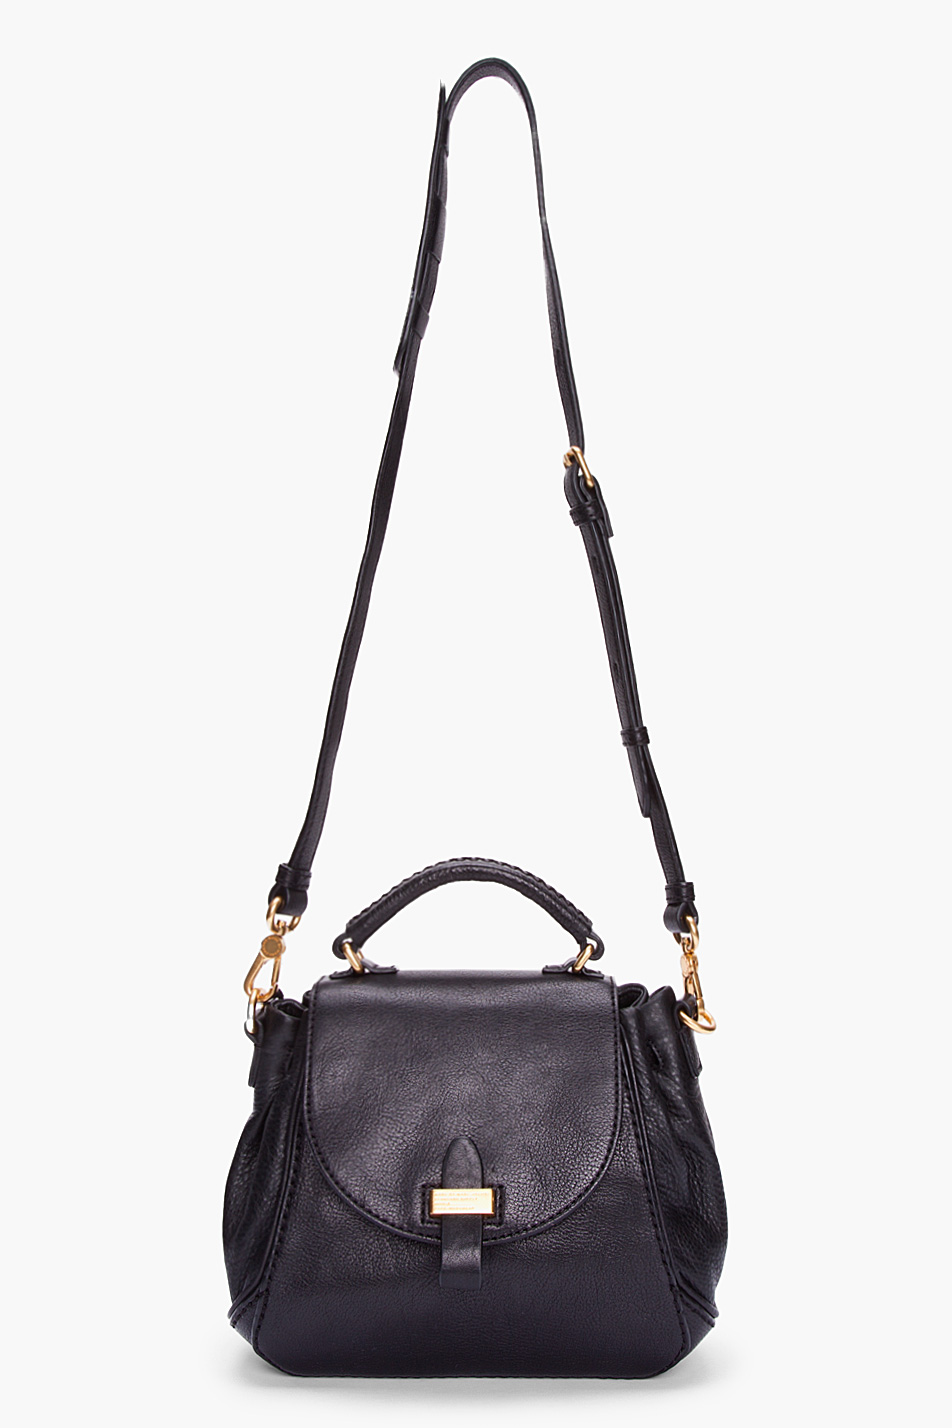 Marc by marc jacobs Small Black Leather Irina Shoulder Bag in ...